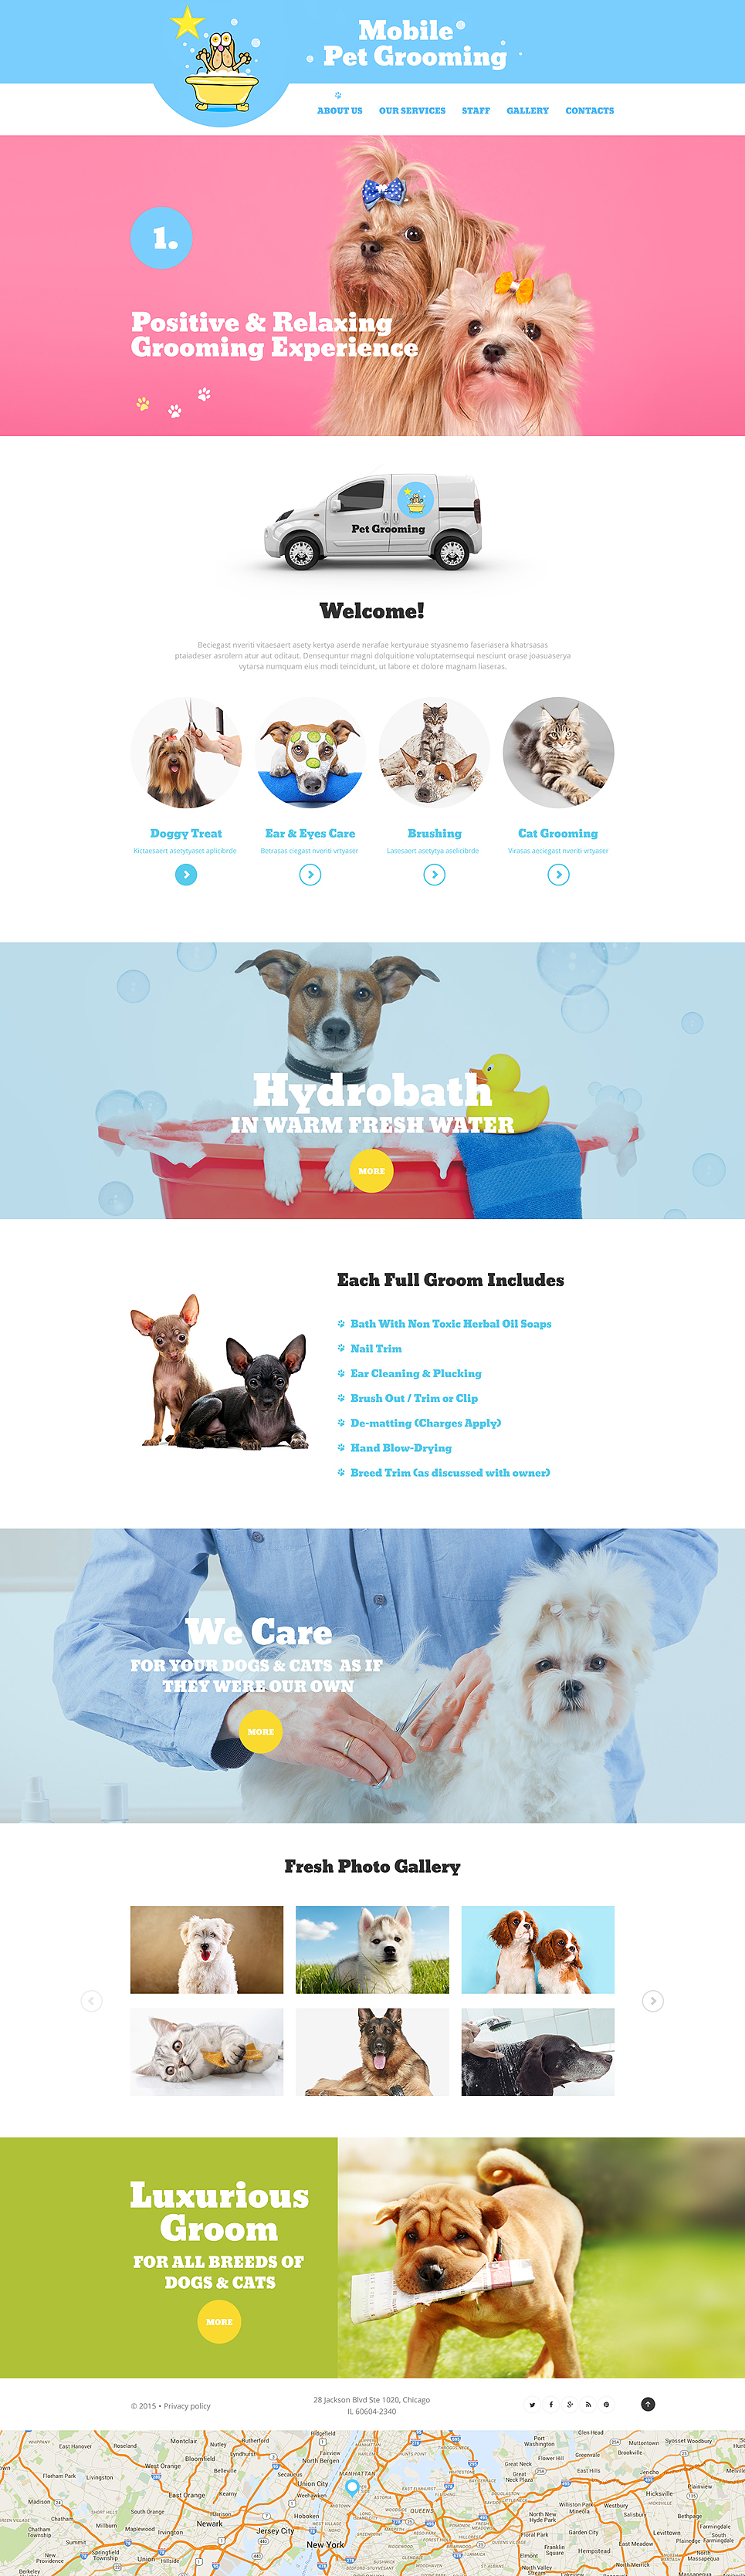 Mobile Pet Grooming template illustration image